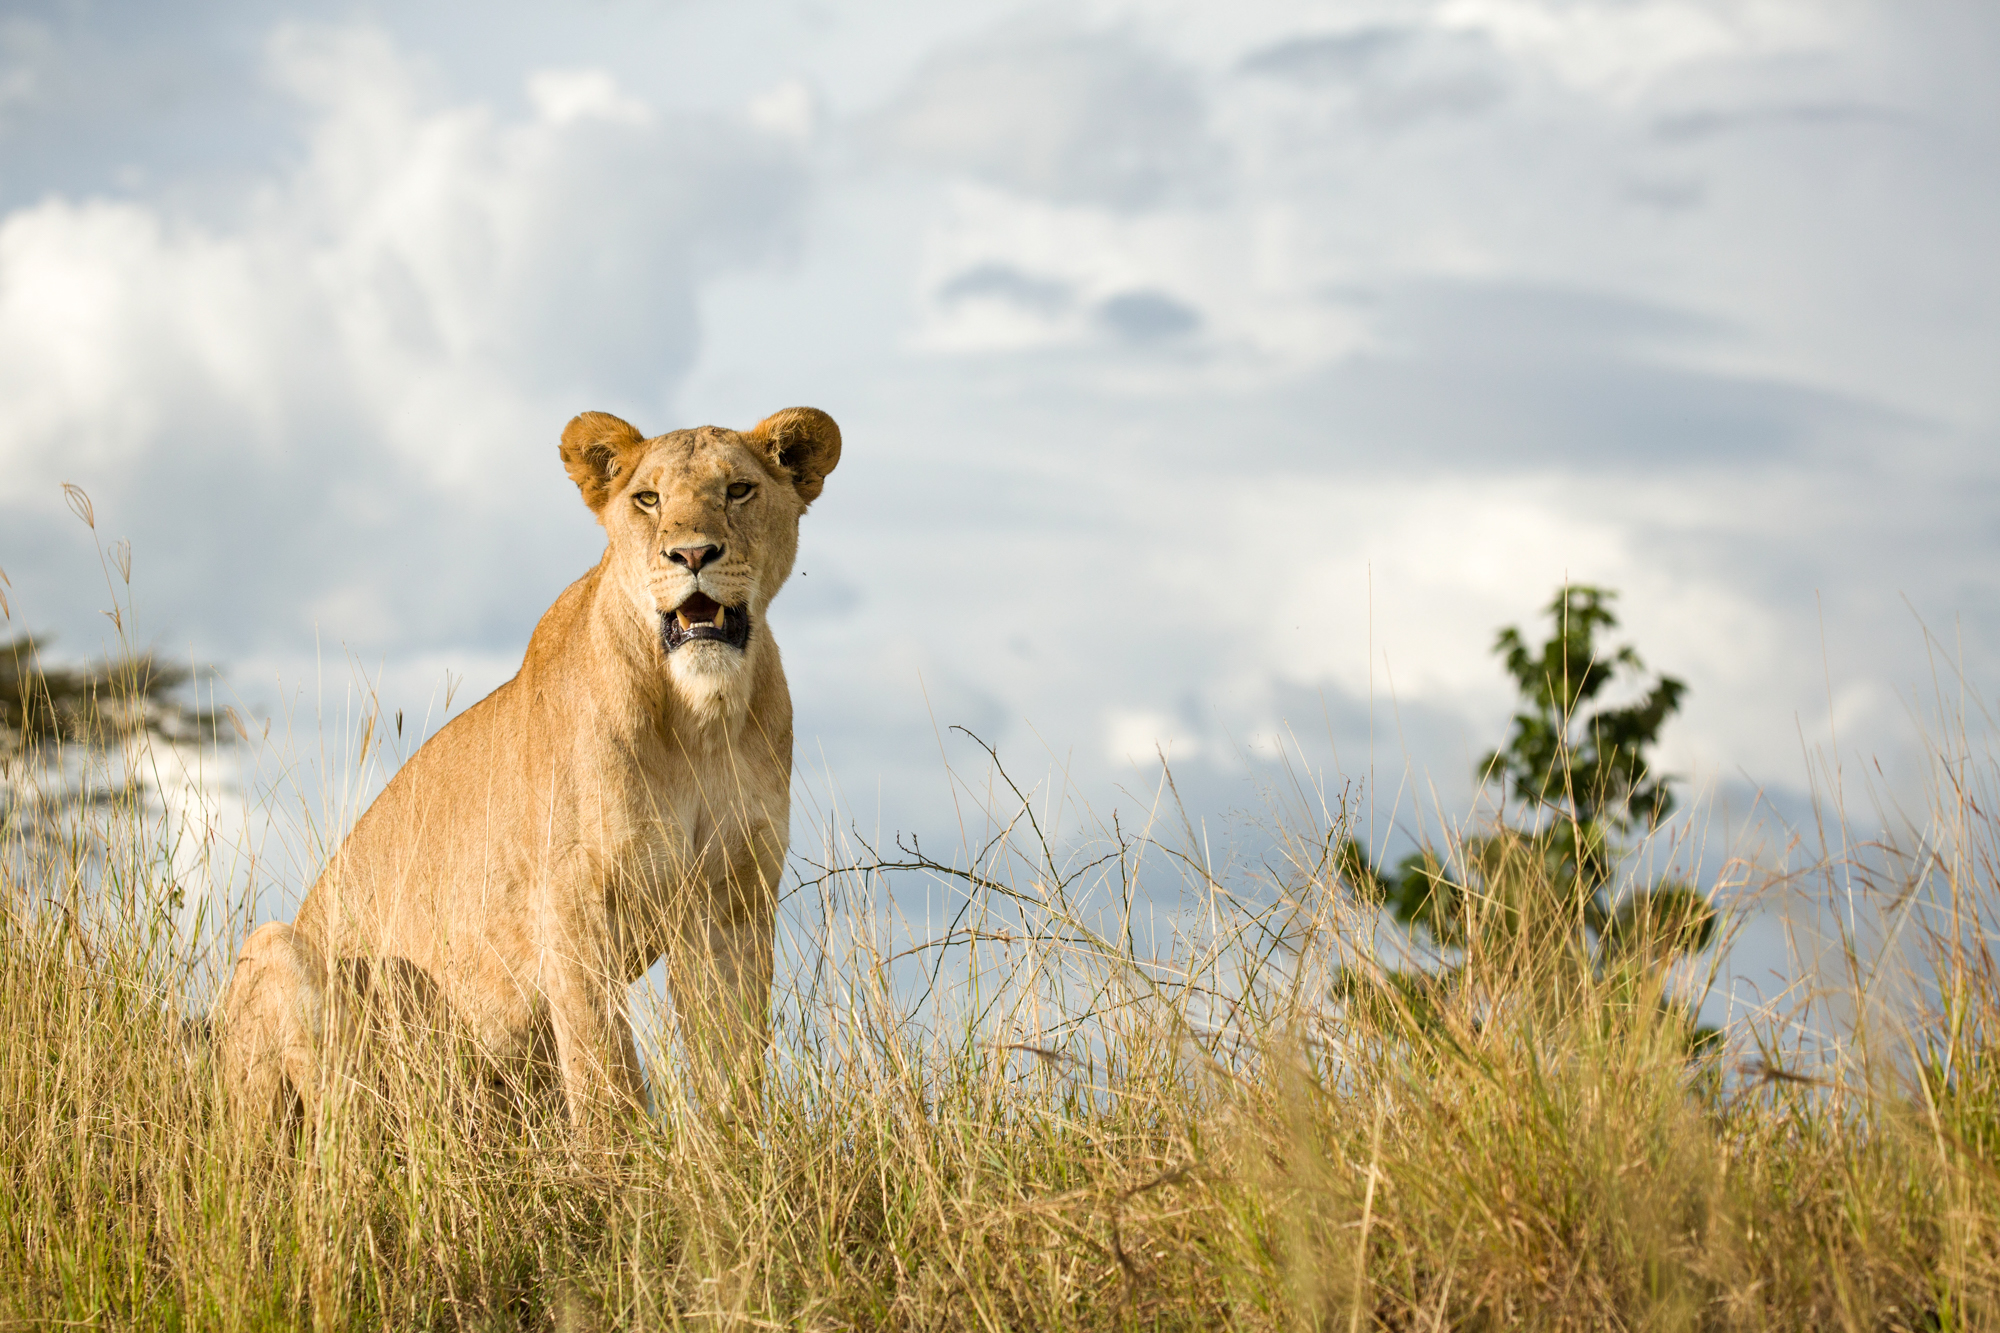 A lioness sitting on a hill in the Masai Mara